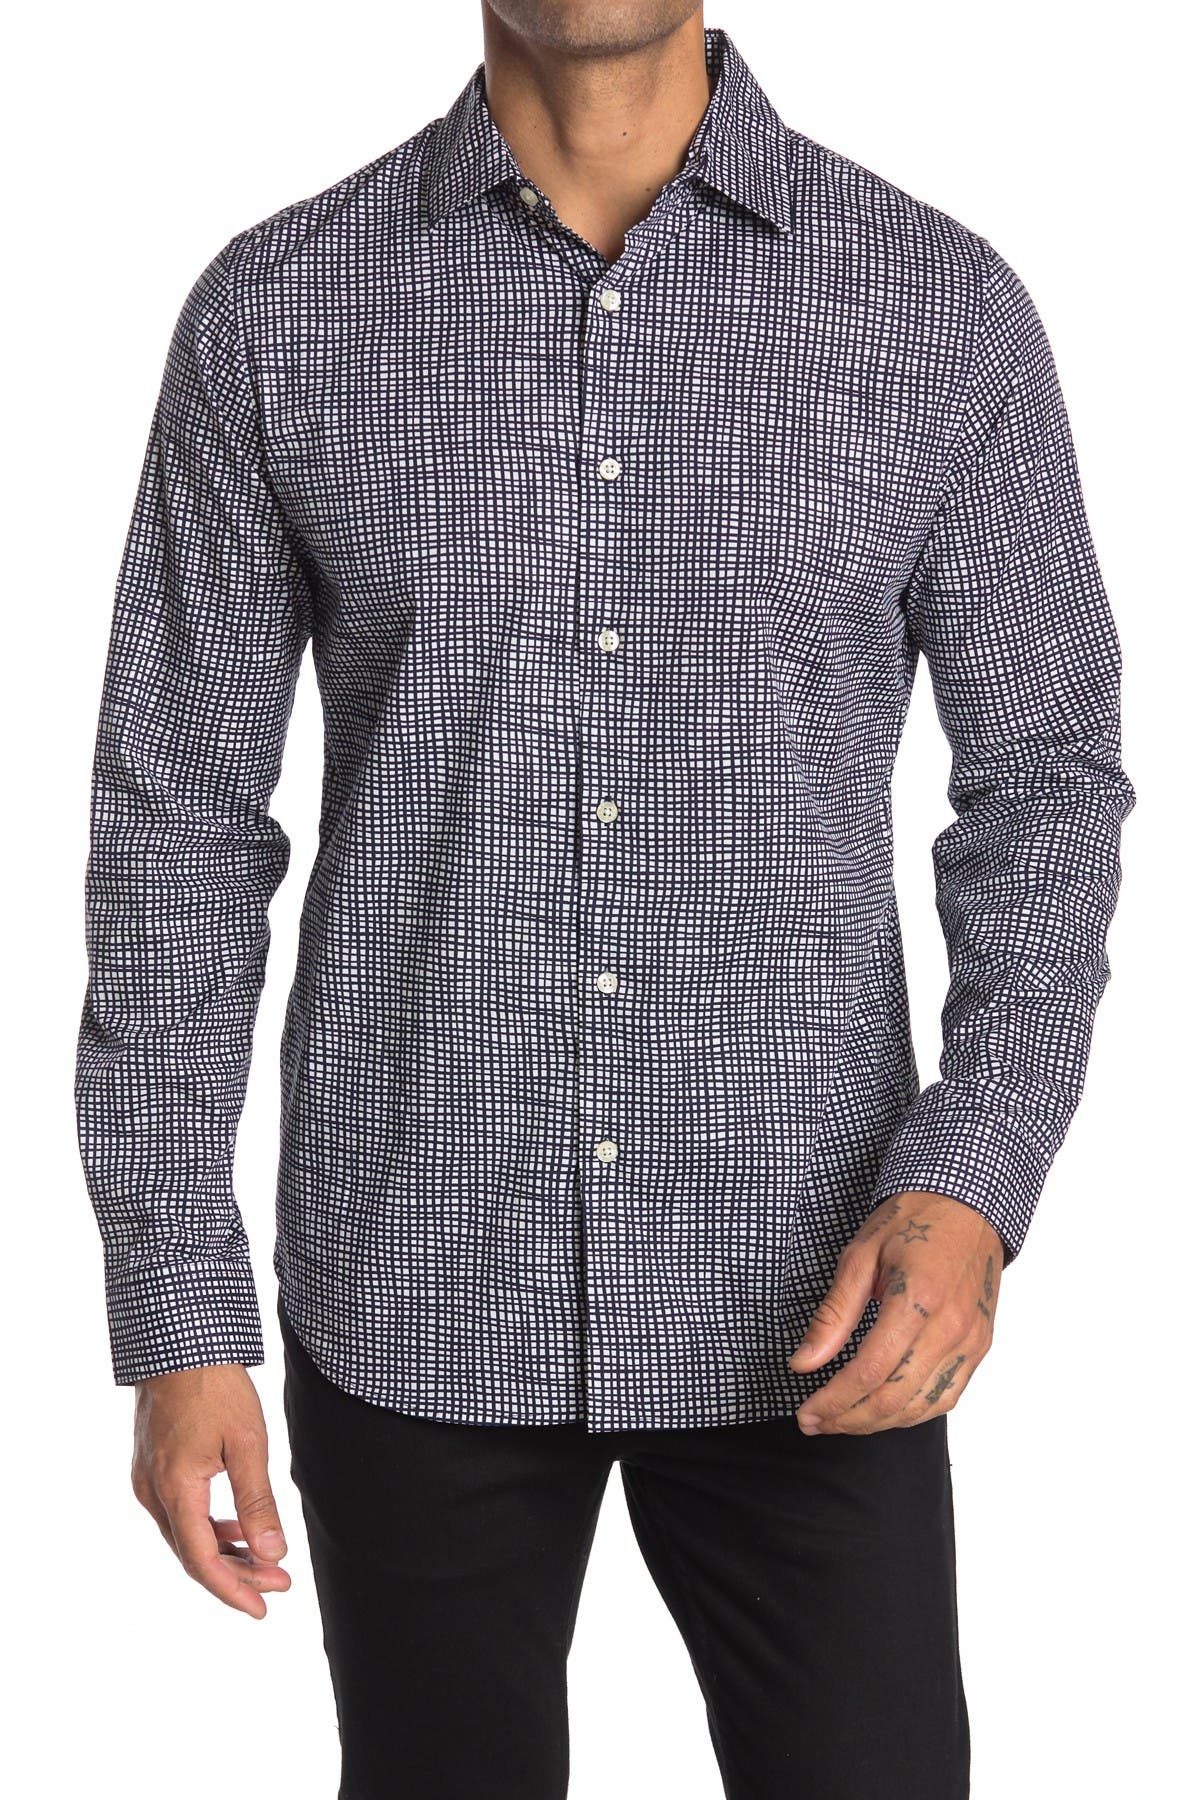 Image of DKNY Hand Drawn Check Print Stretch Dress Shirt